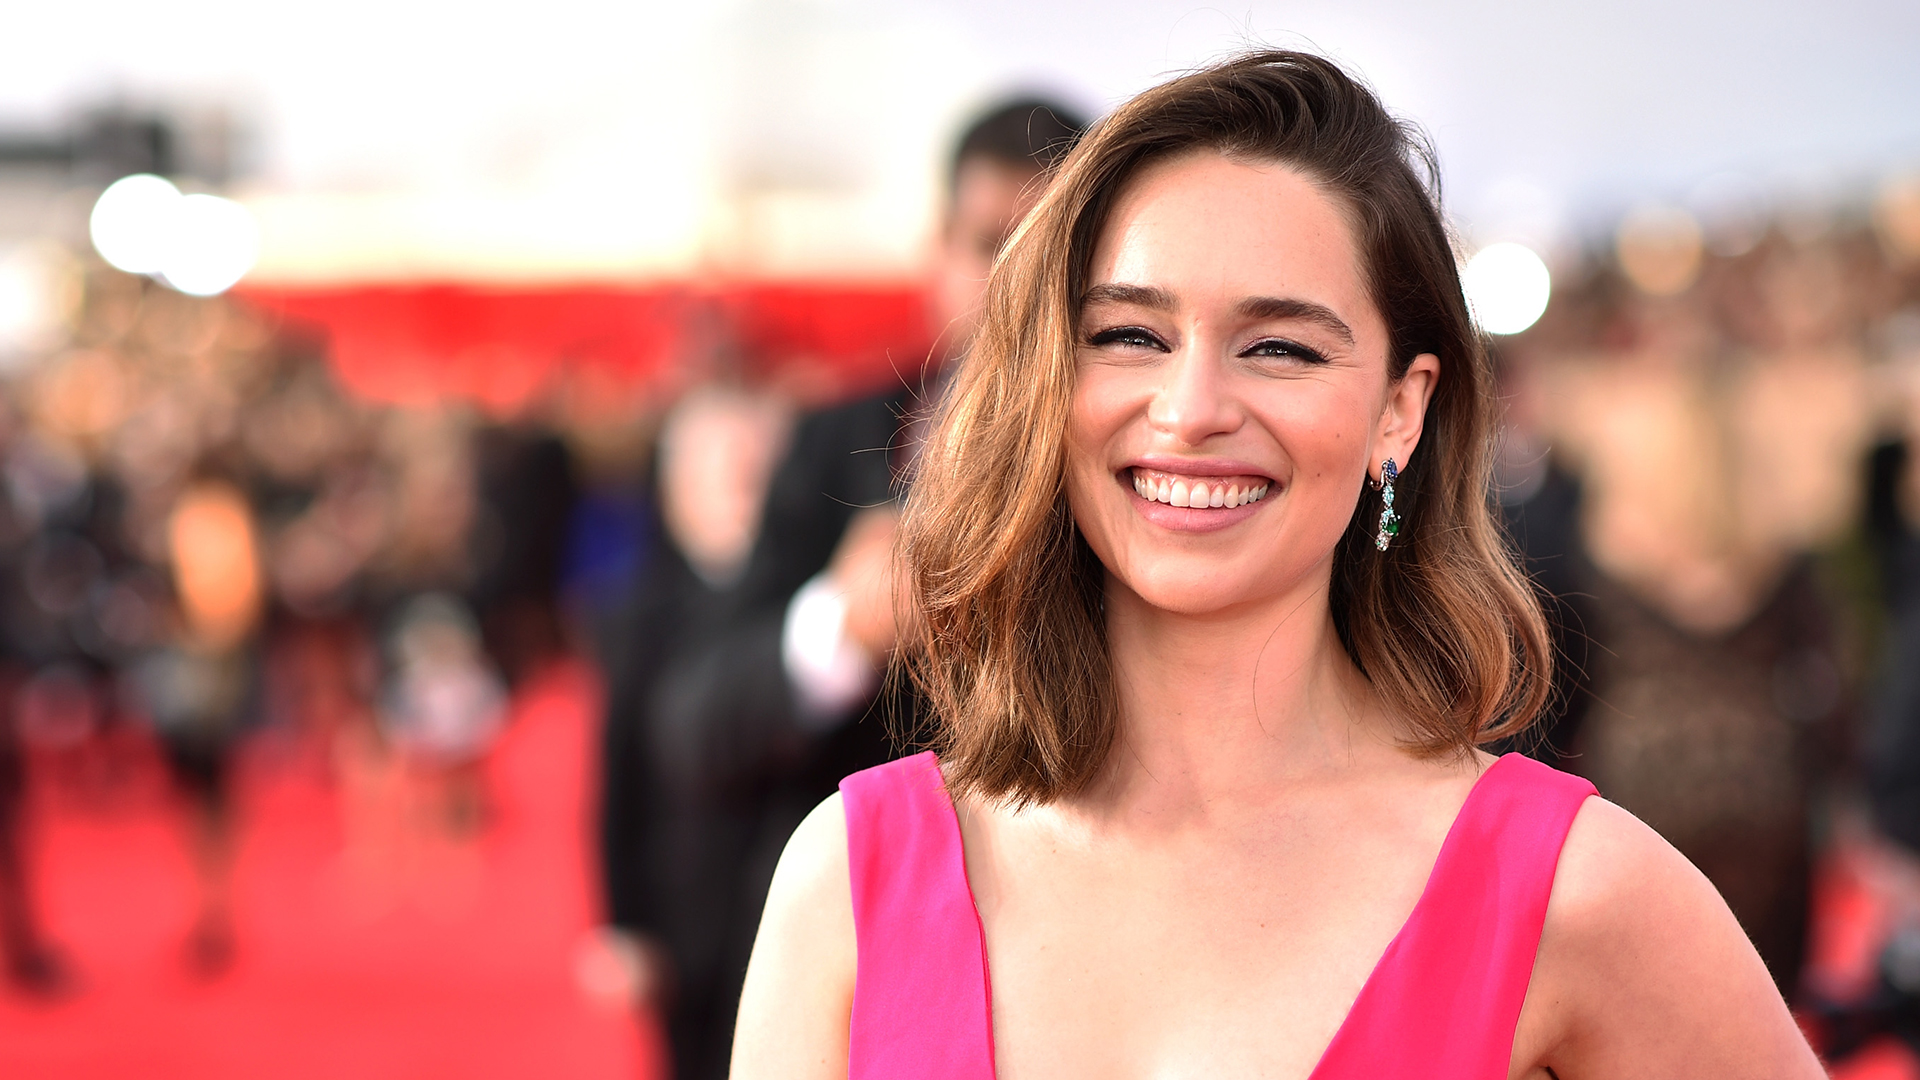 Emilia Clarke Reveals Frightening Health Scare That Almost Killed Her